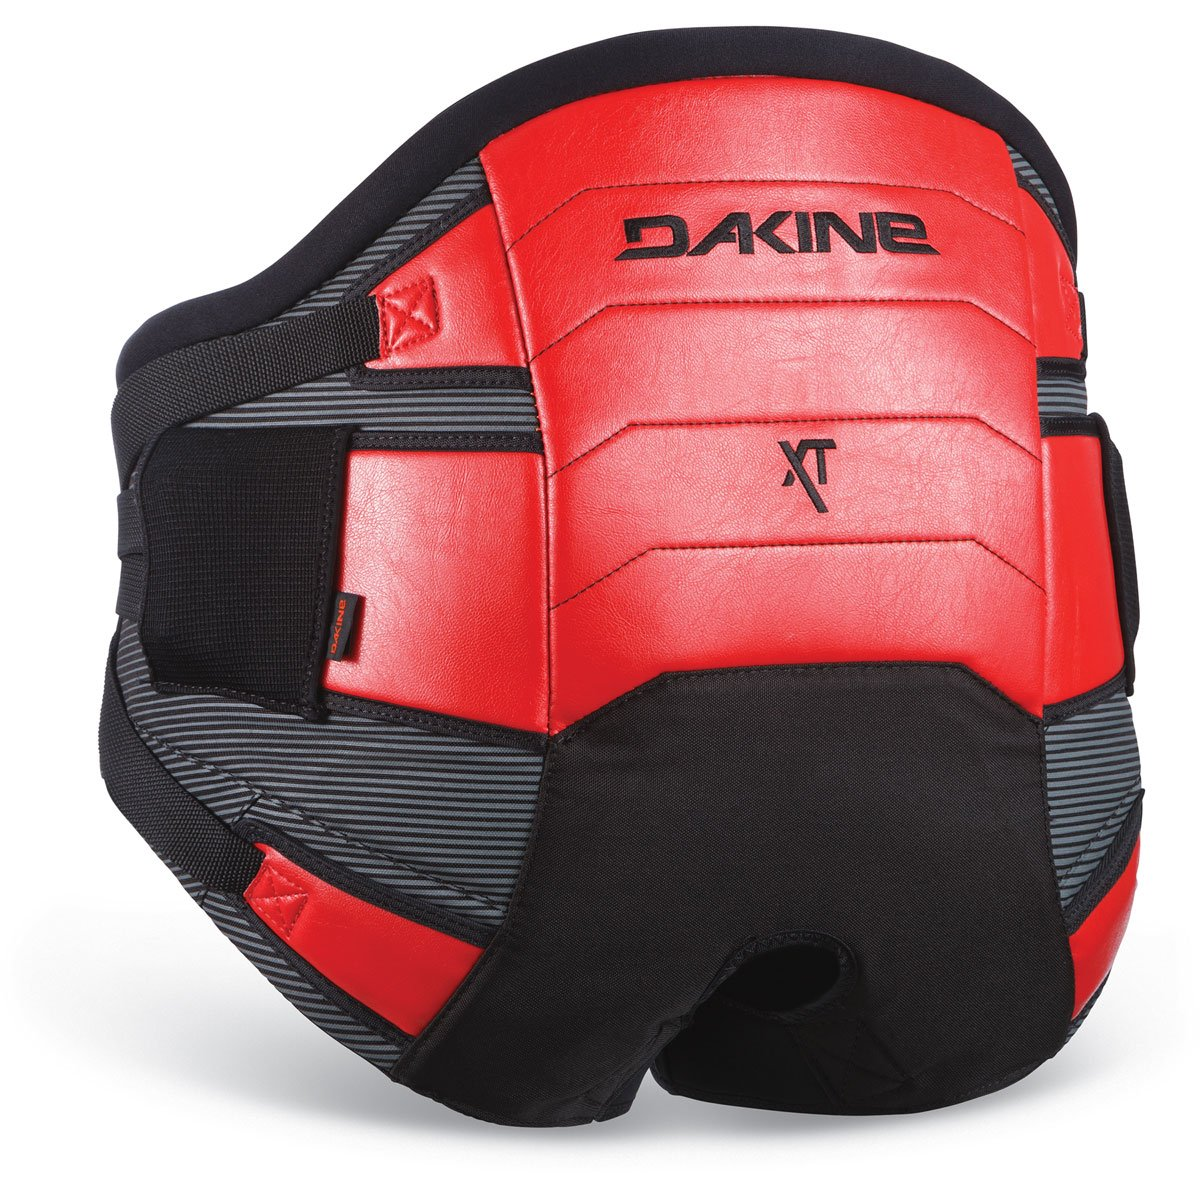 Dakine Men's XT Seat Windsurf Harness, Red, M by Dakine